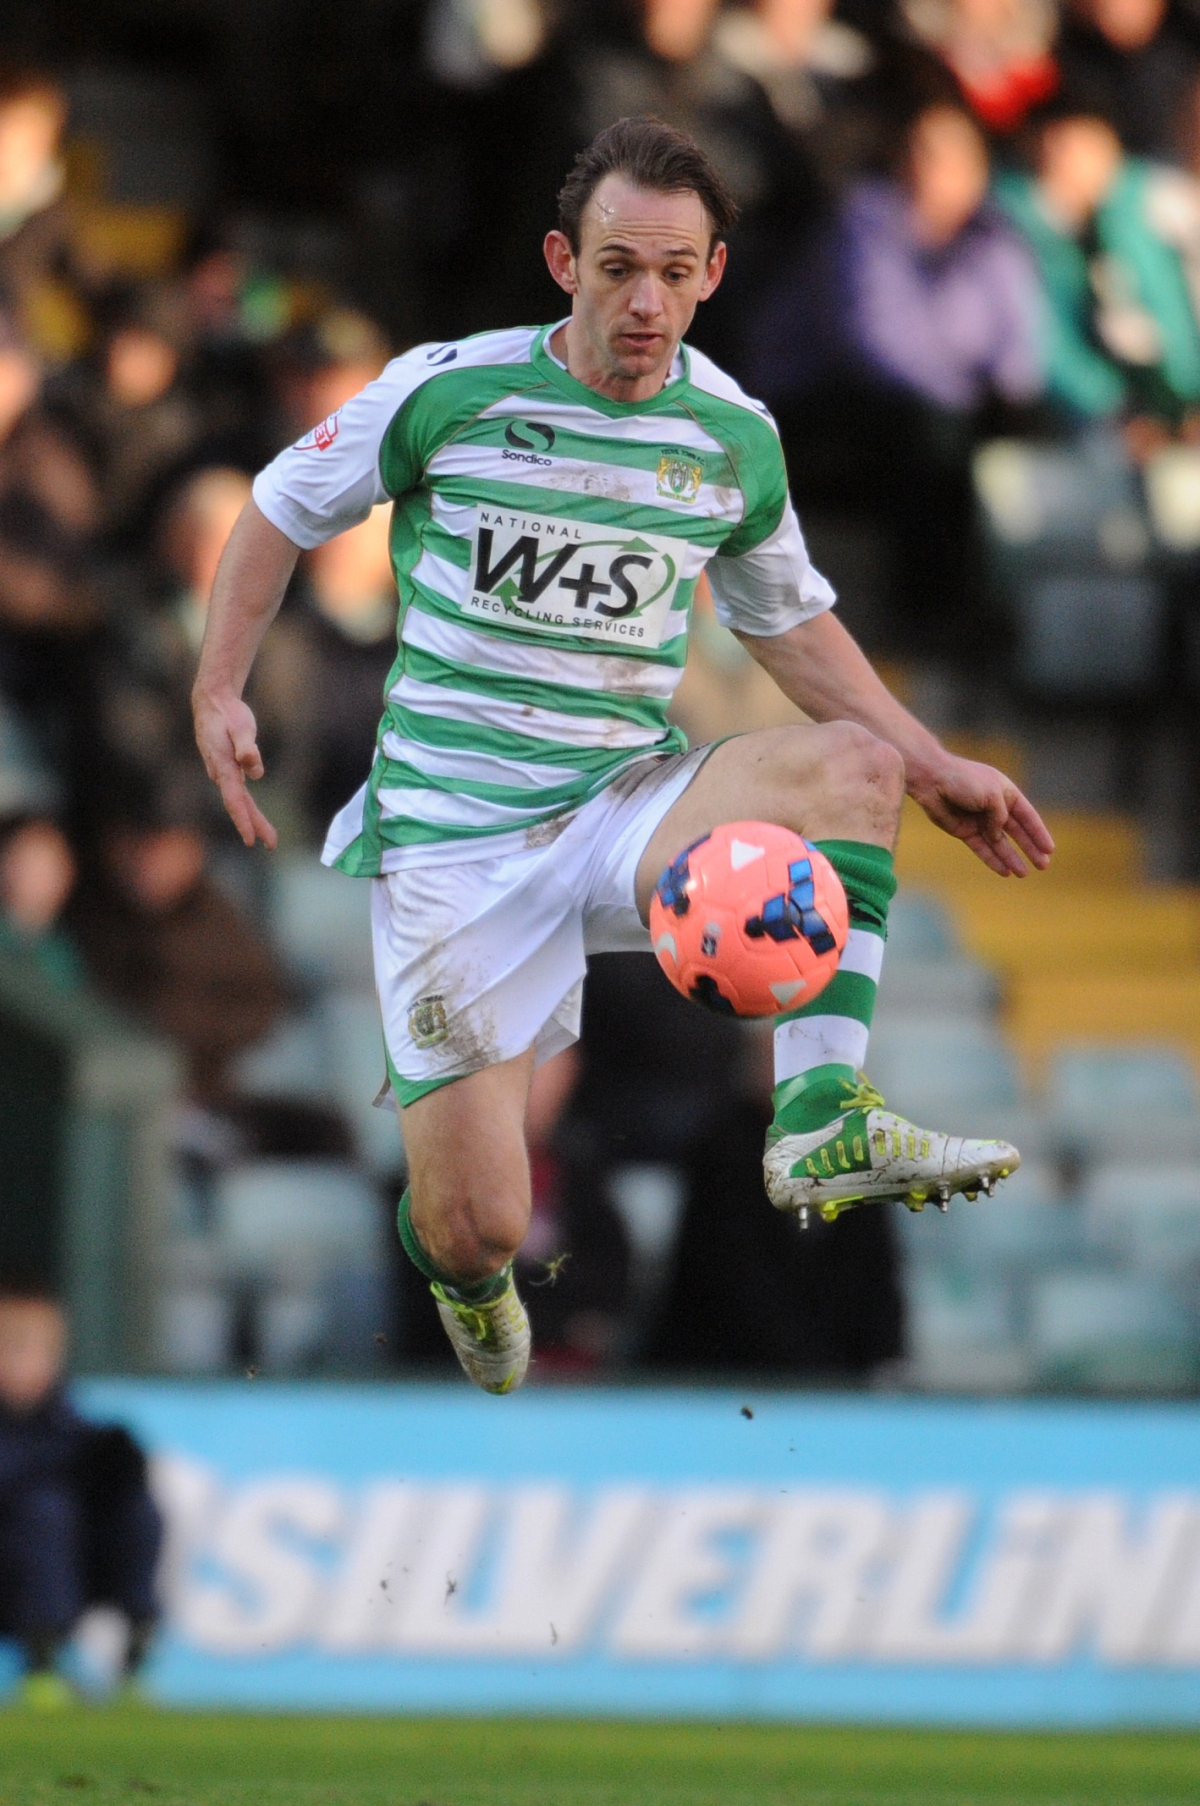 SkyBet Championship: Yeovil Town 1, Doncaster Rovers 0